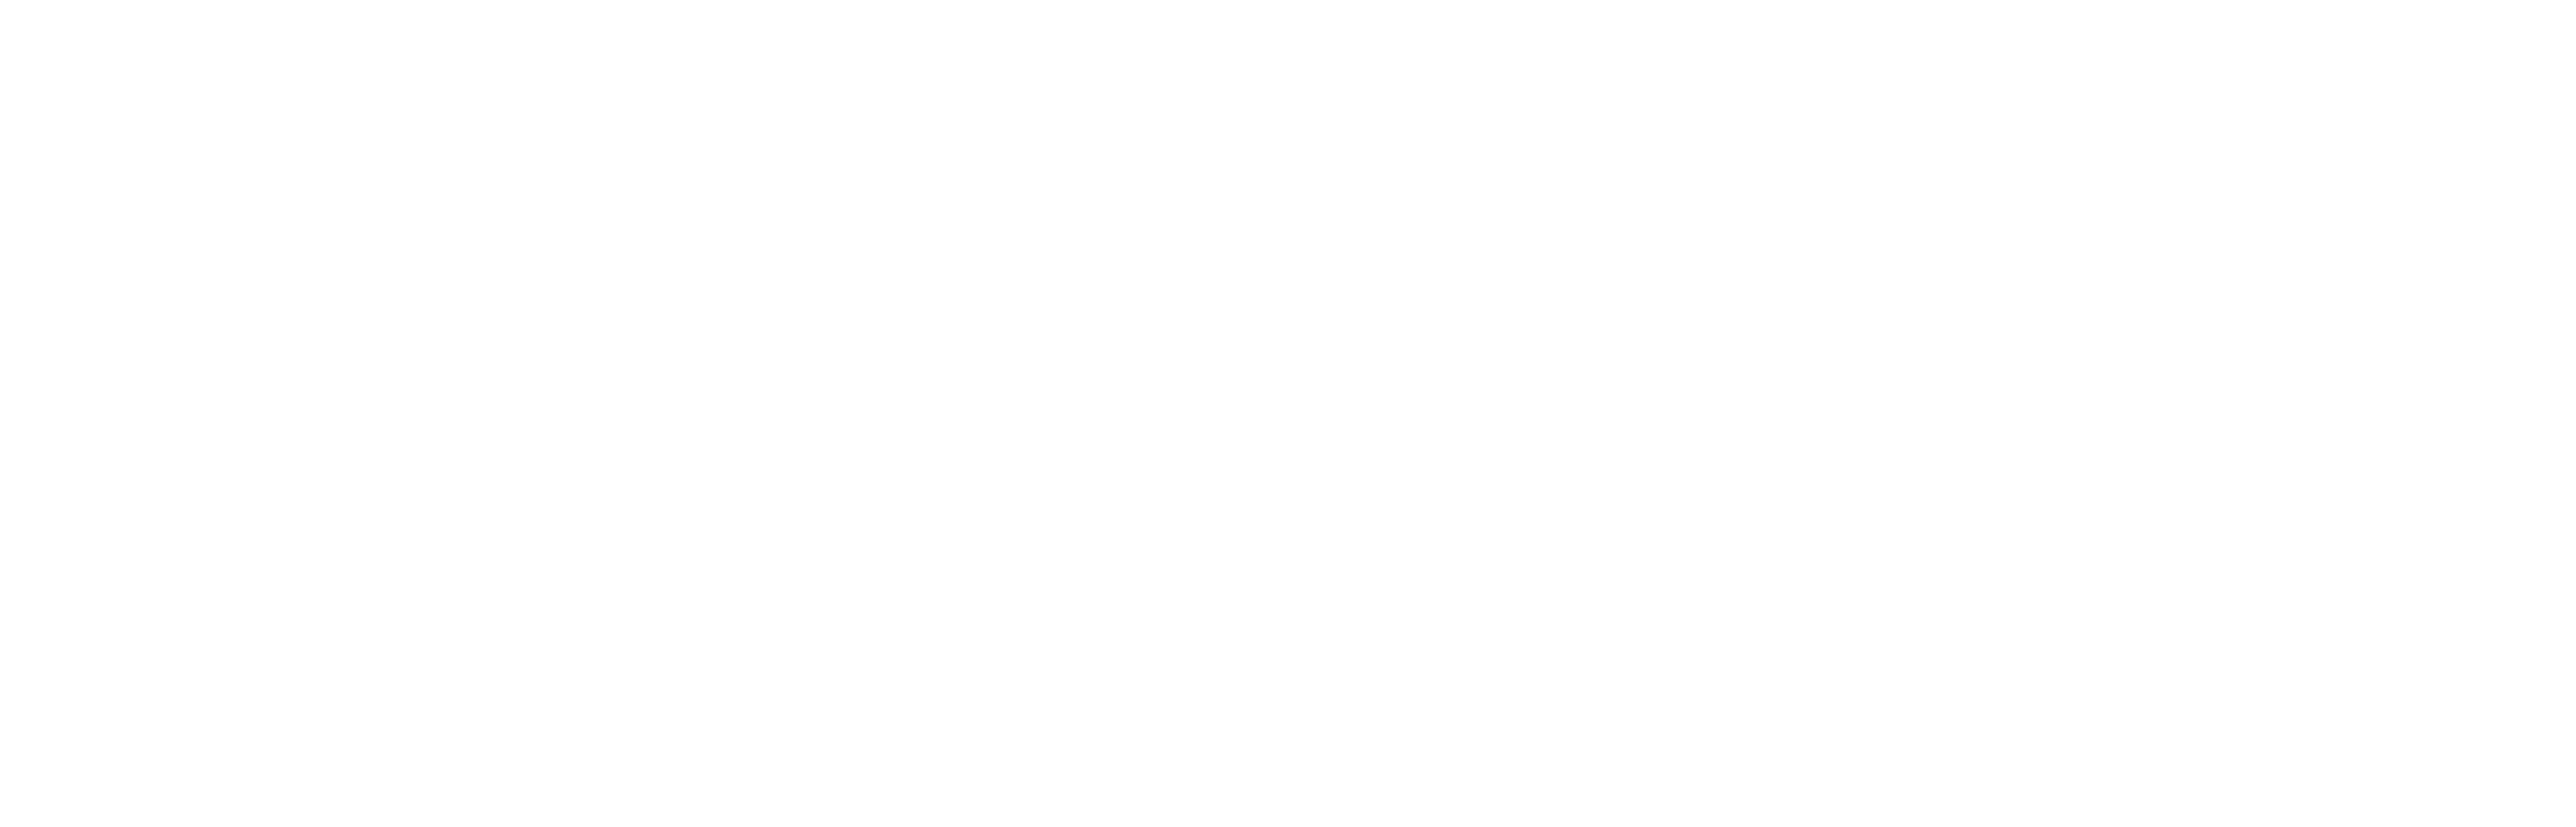 Data Checker